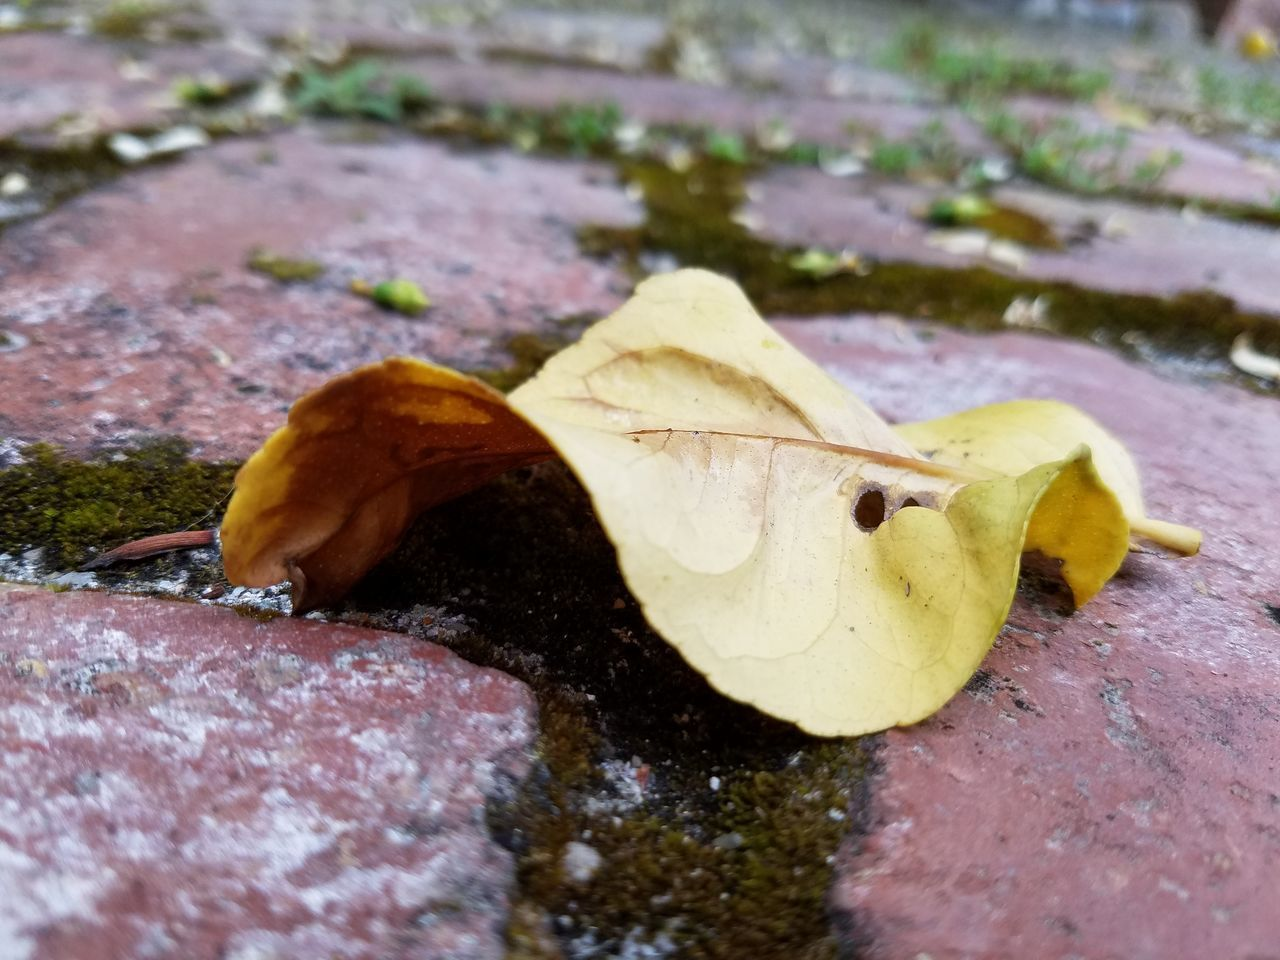 leaf, nature, day, change, outdoors, close-up, fragility, no people, animal themes, one animal, animals in the wild, autumn, beauty in nature, maple